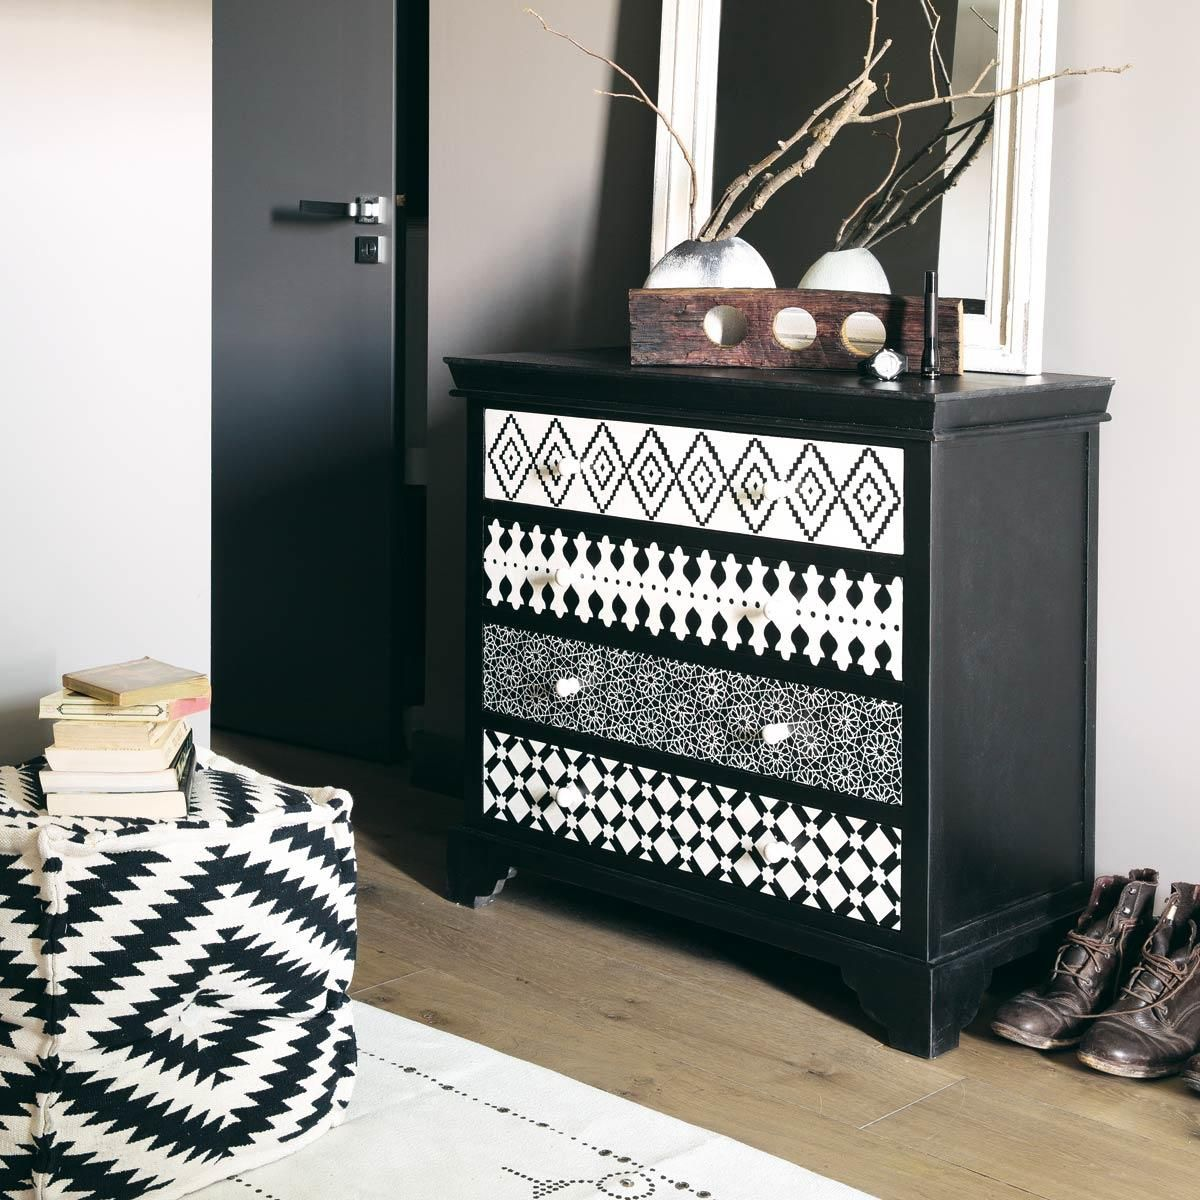 Repeindre sa commode avec plusieurs patterns g om triques - Repeindre commode ...